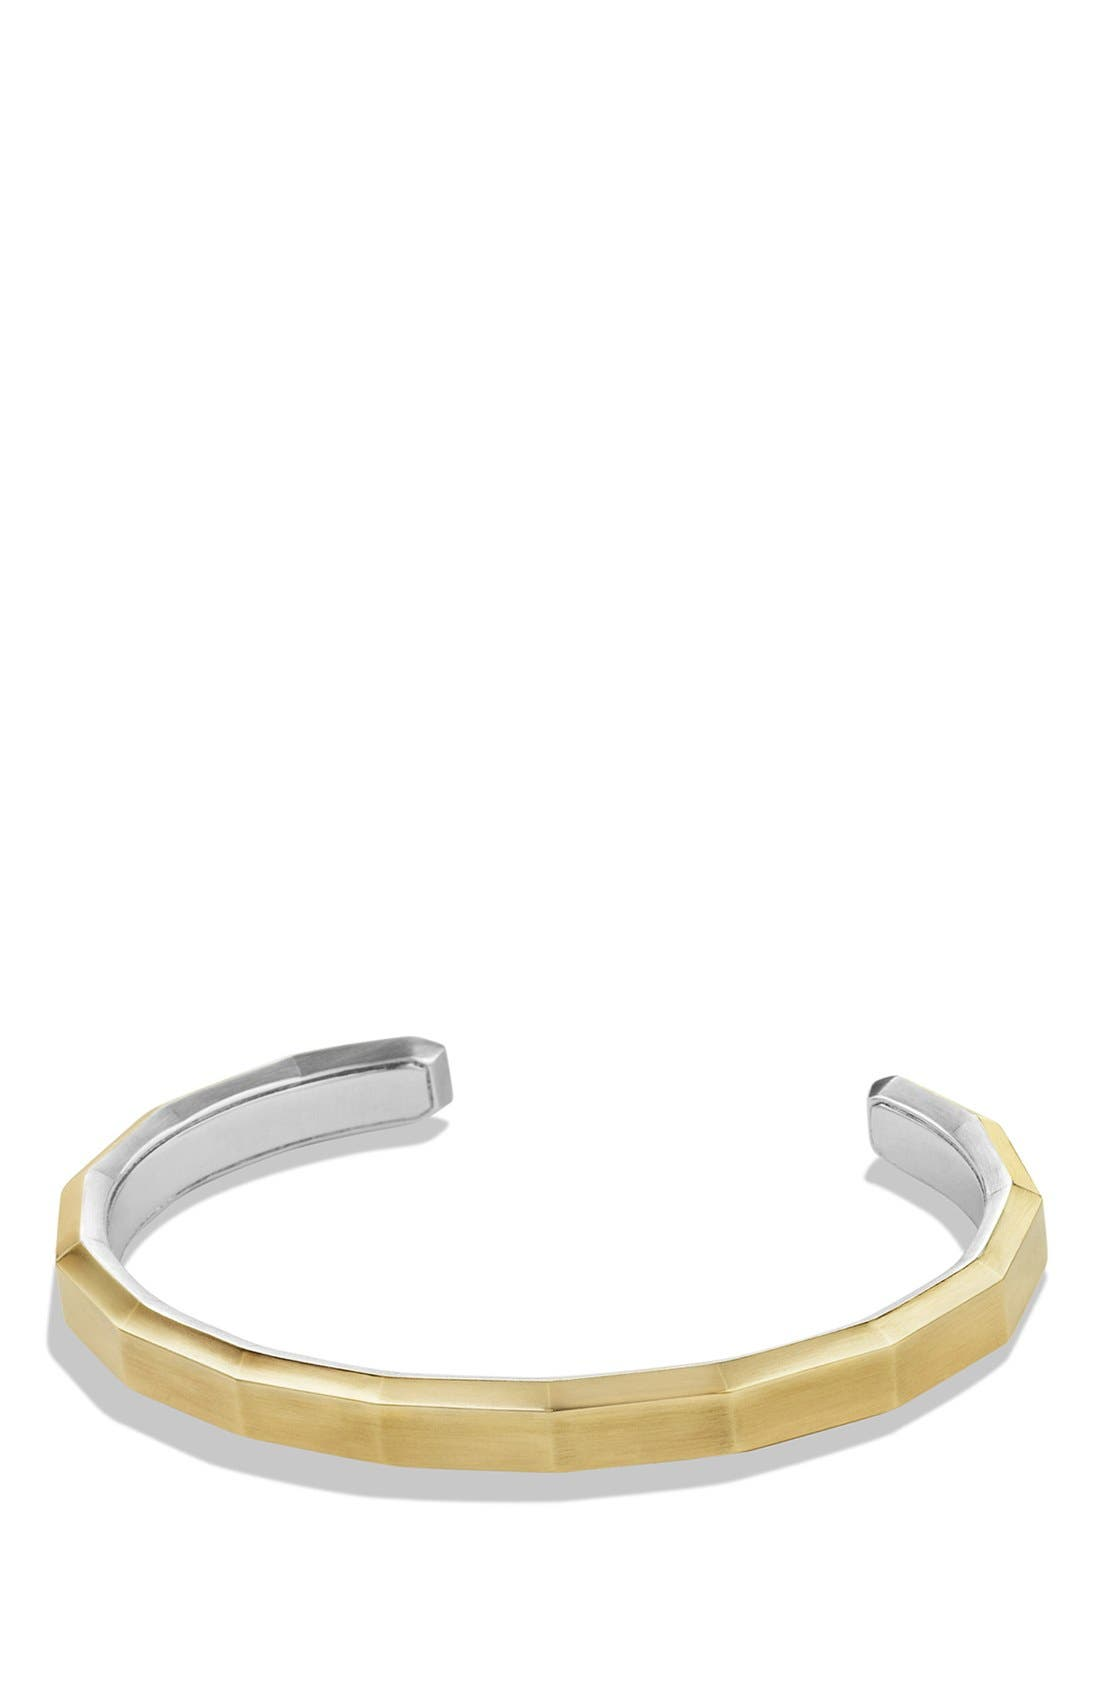 'Faceted Metal' Cuff Bracelet with 18k Gold,                             Main thumbnail 1, color,                             041